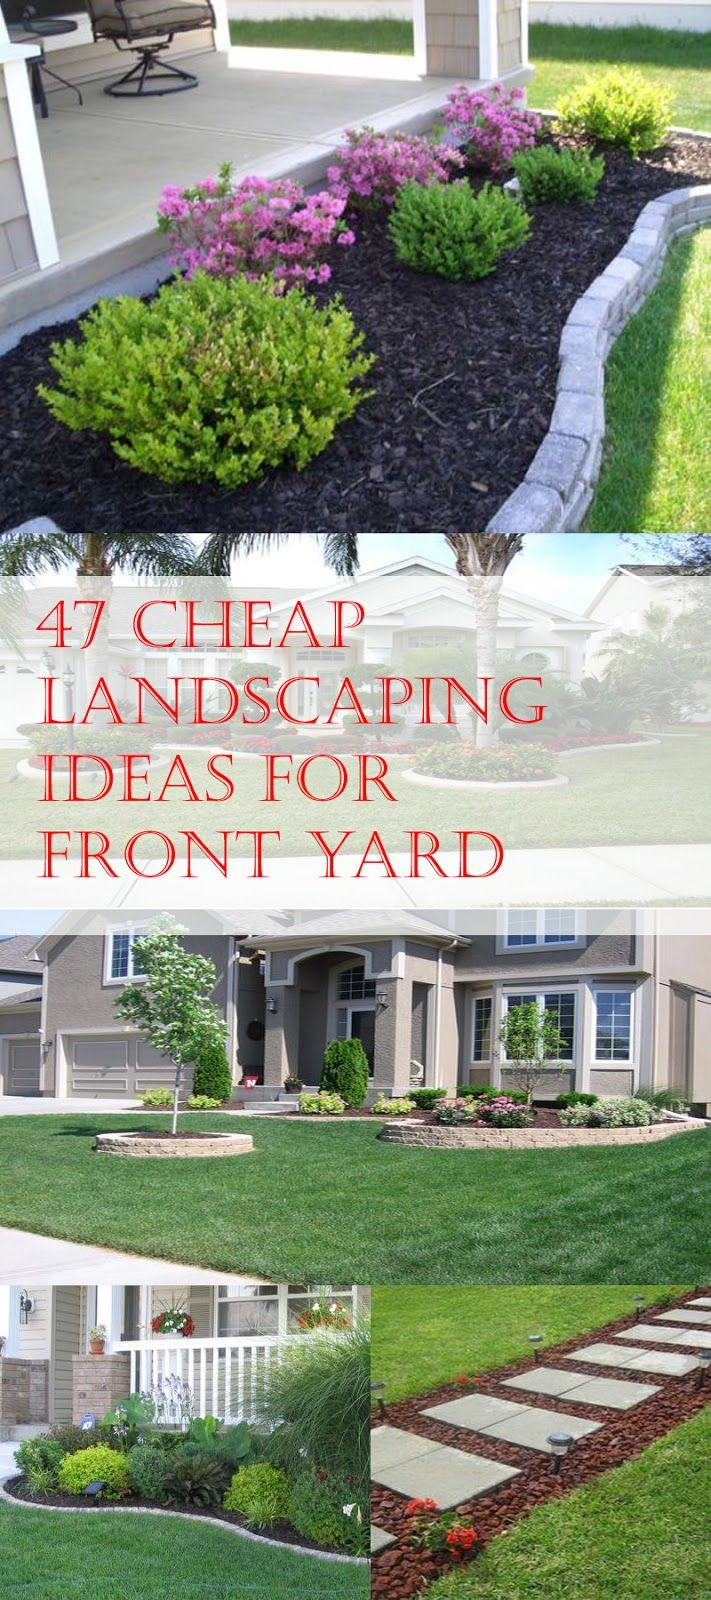 Cheap Front Yard Landscaping Ideas Part - 29: 47 Cheap Landscaping Ideas For Front Yard